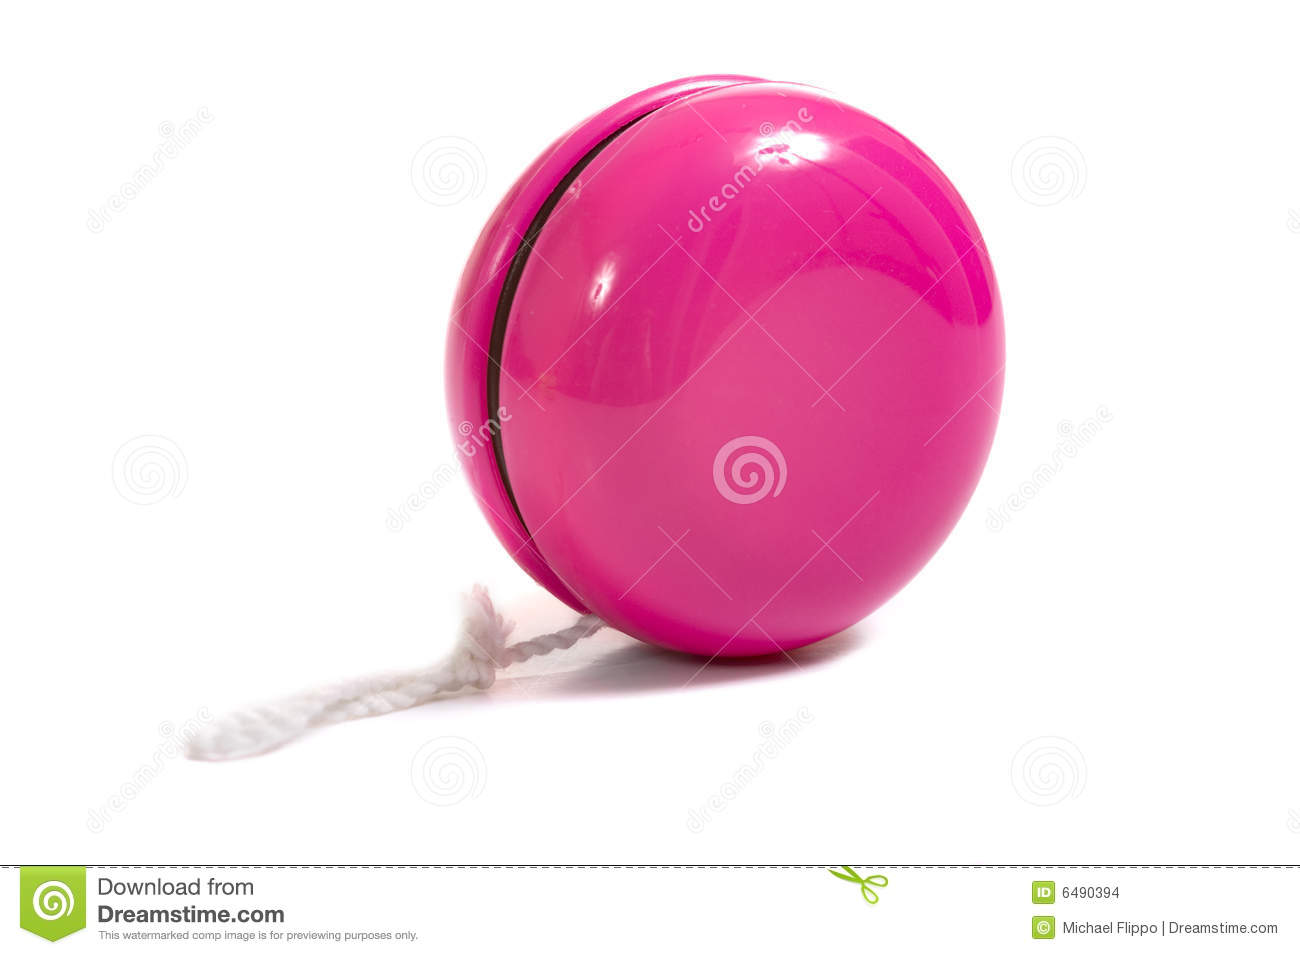 child's pink yo-yo on a white background with copy space.